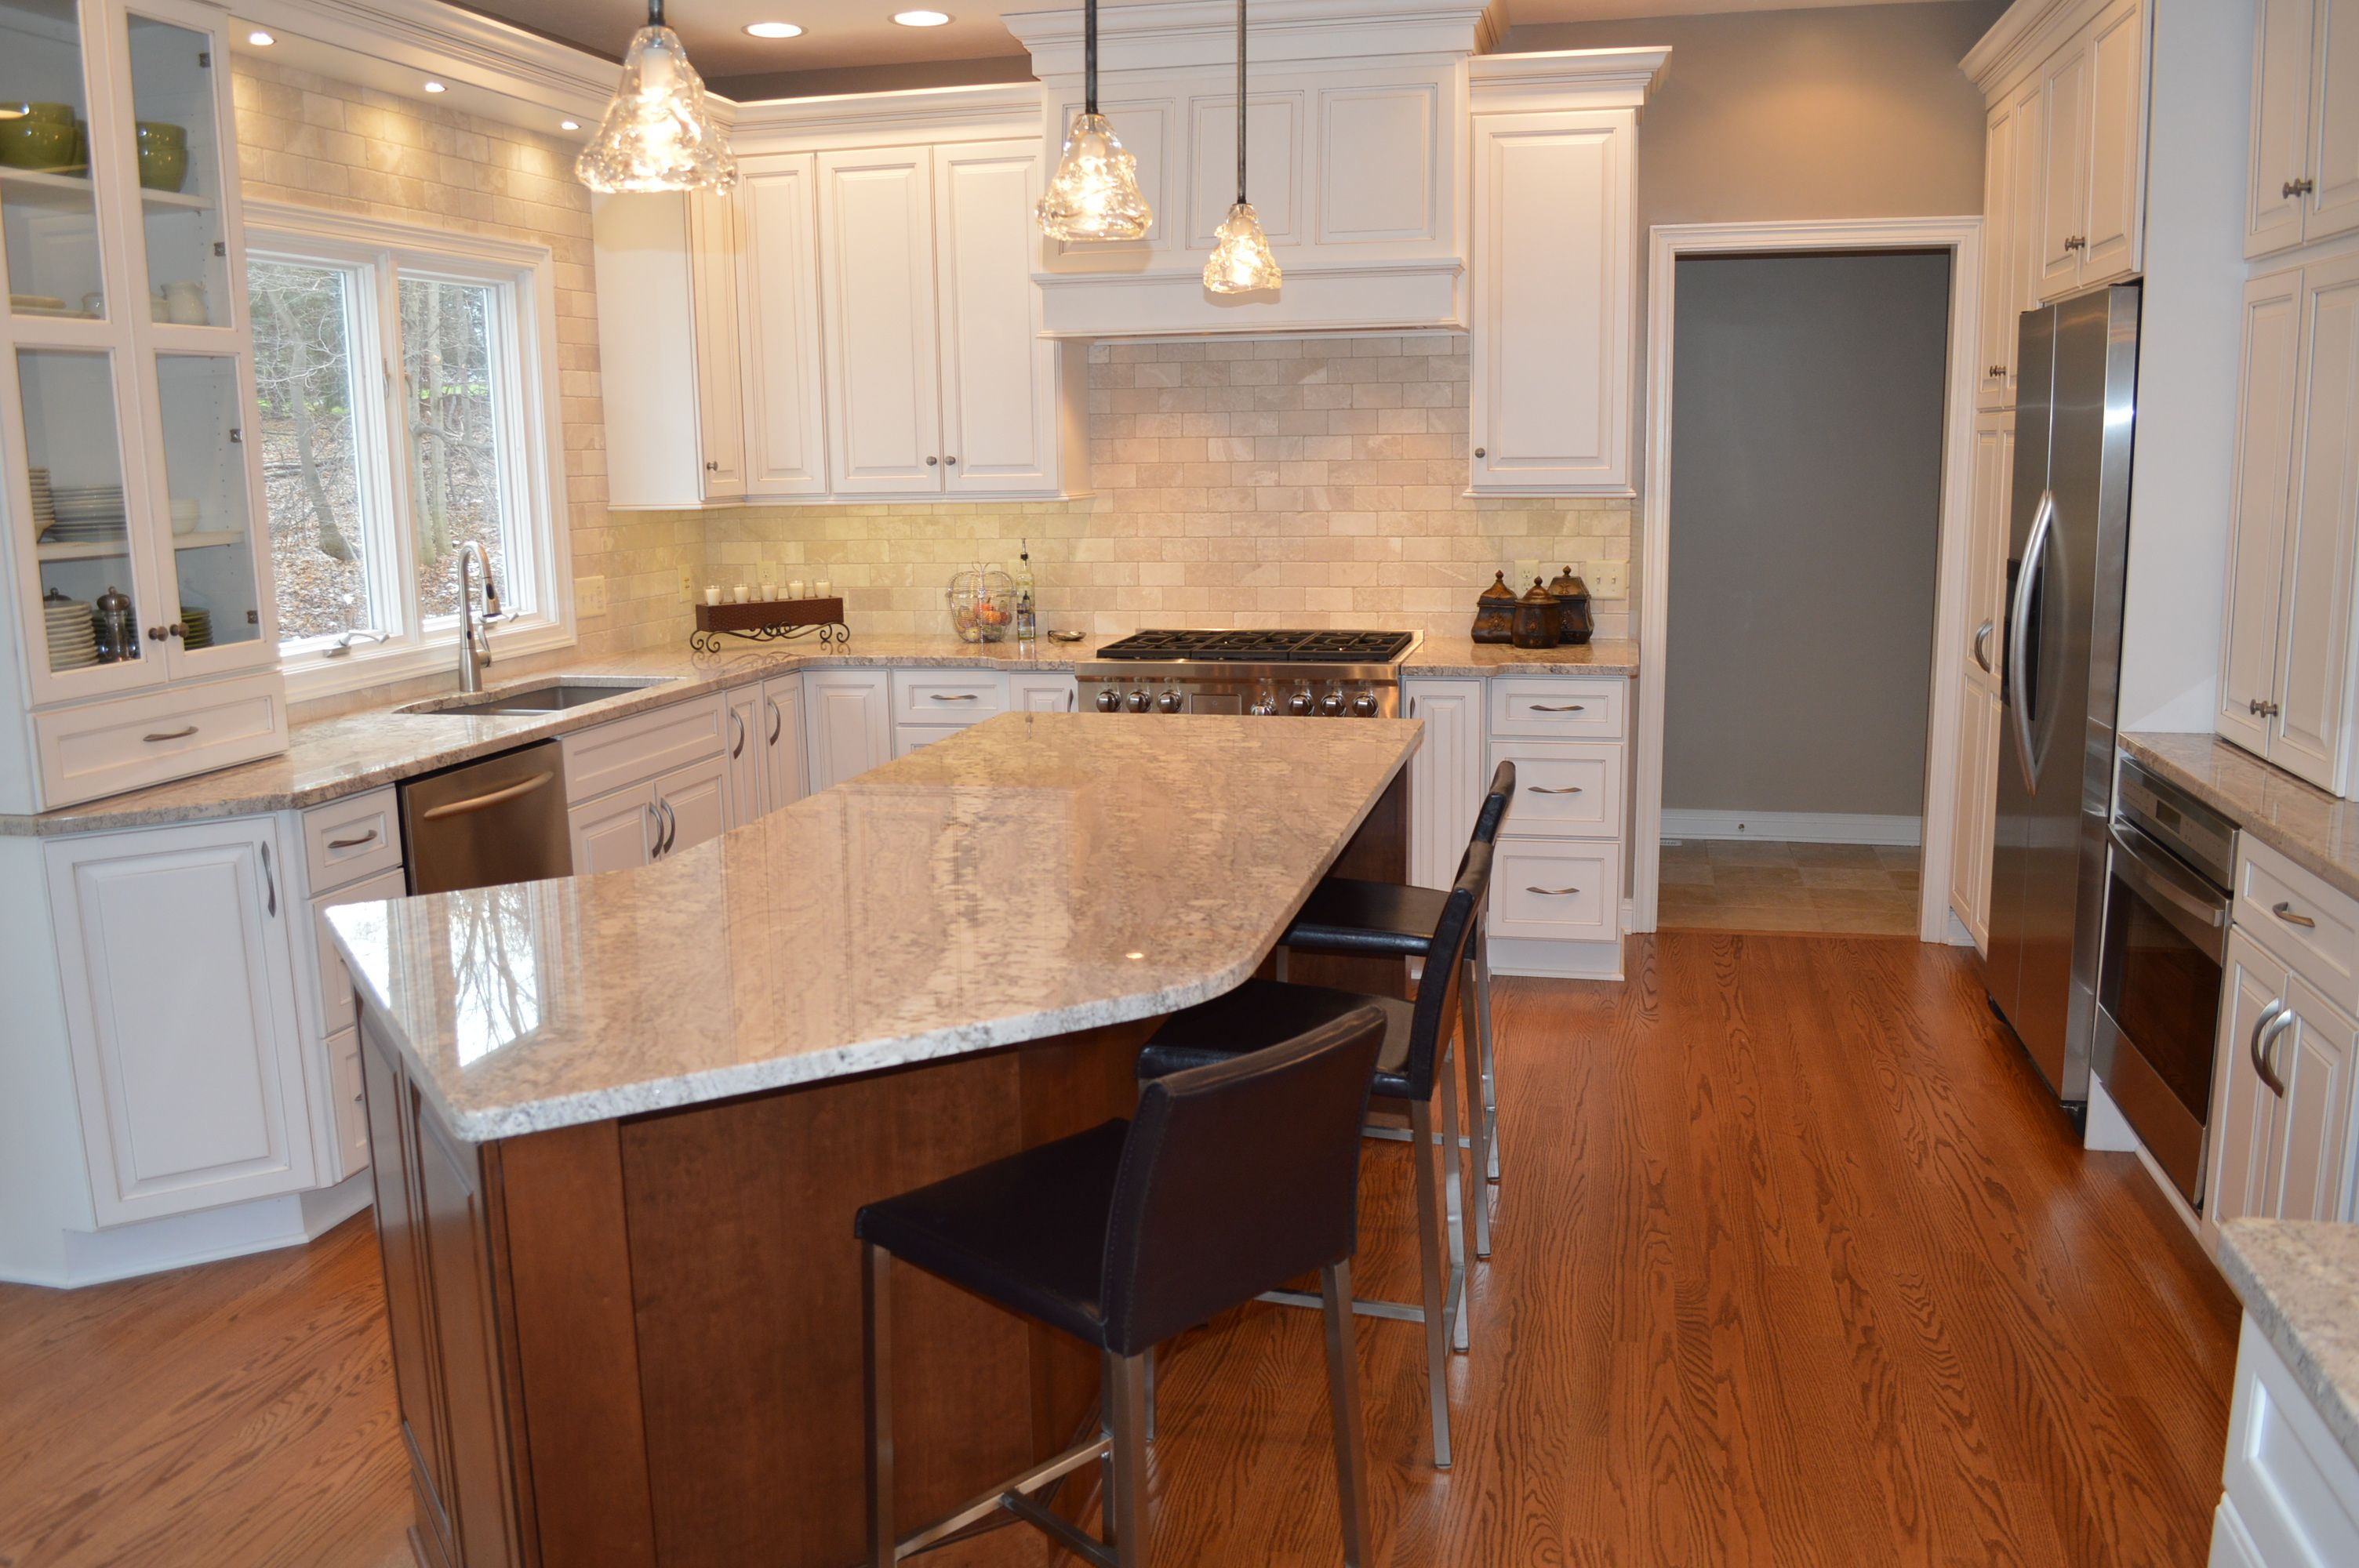 Kitchen Design Wichita Ks A Traditional Kitchen Interior Includes Traditionaltyled Mullions